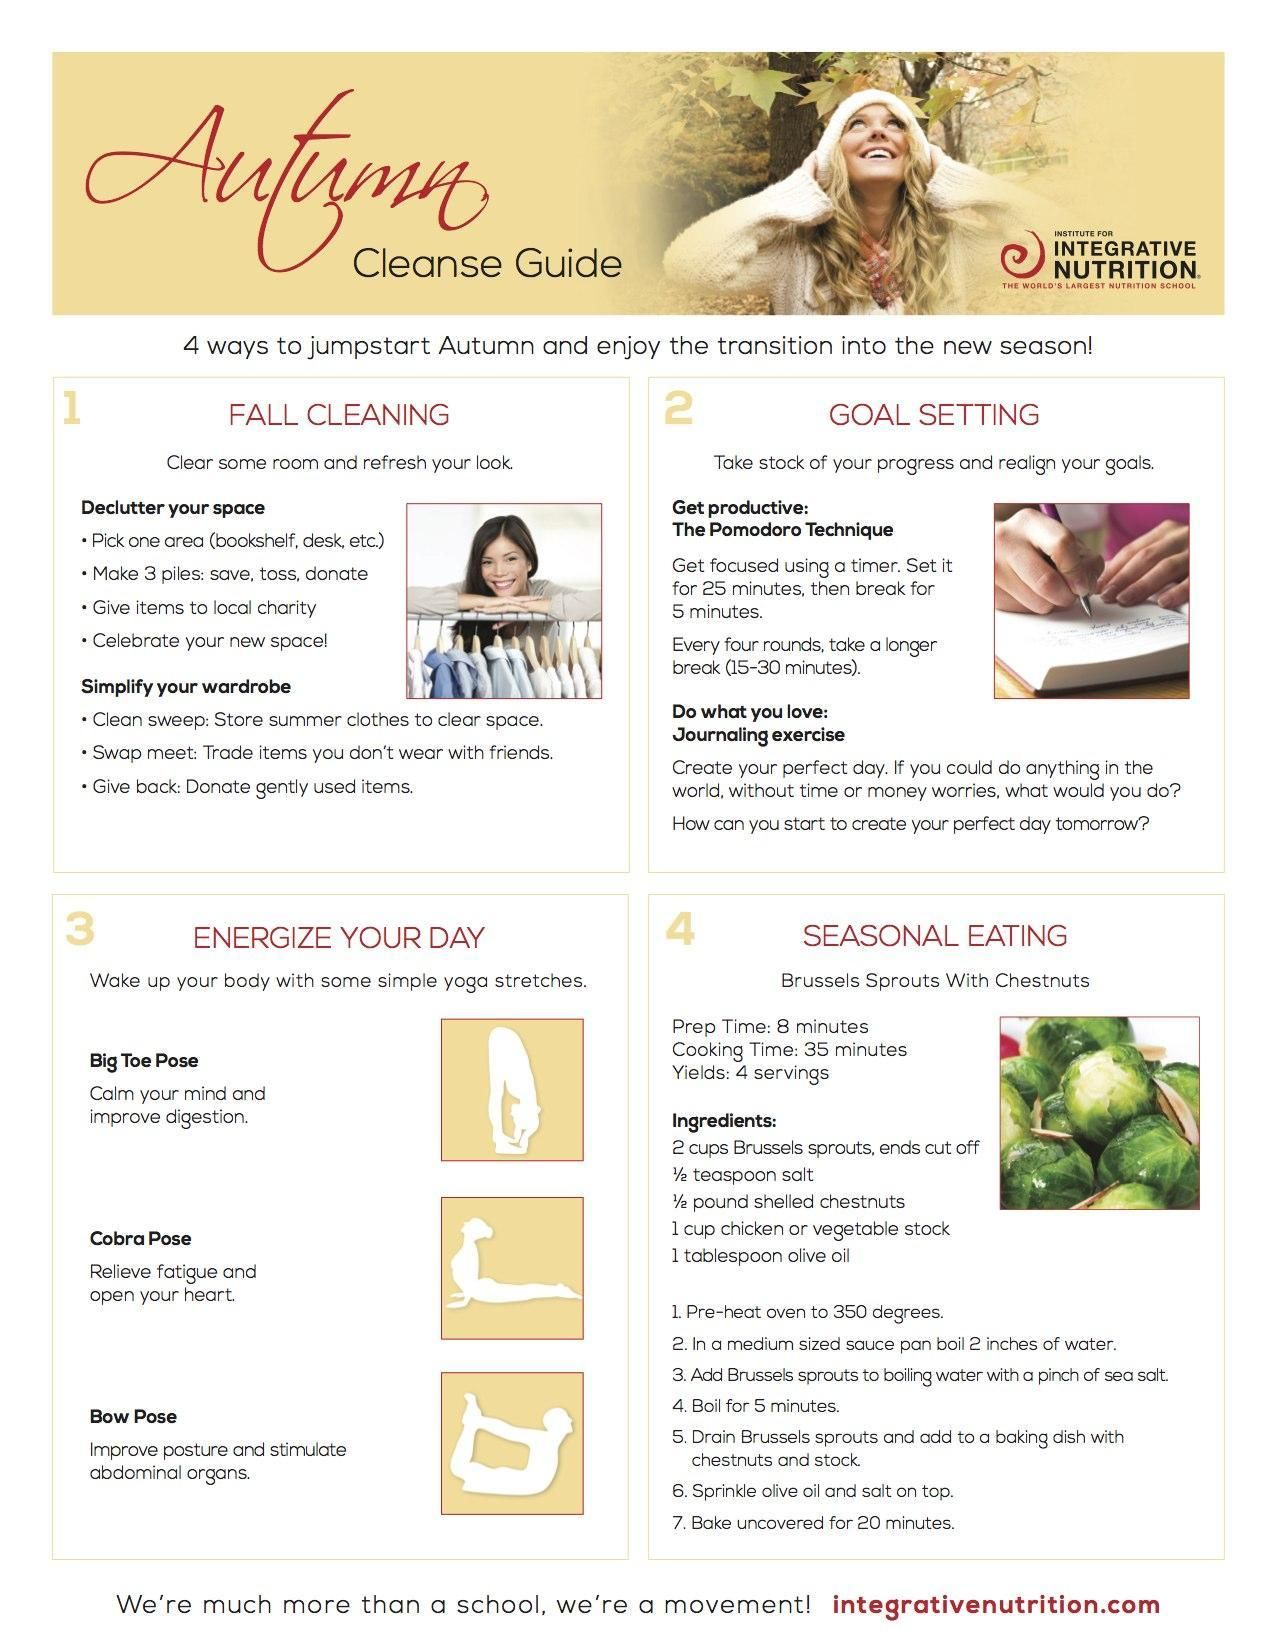 Jumpstart your fall with integrative nutritions fall